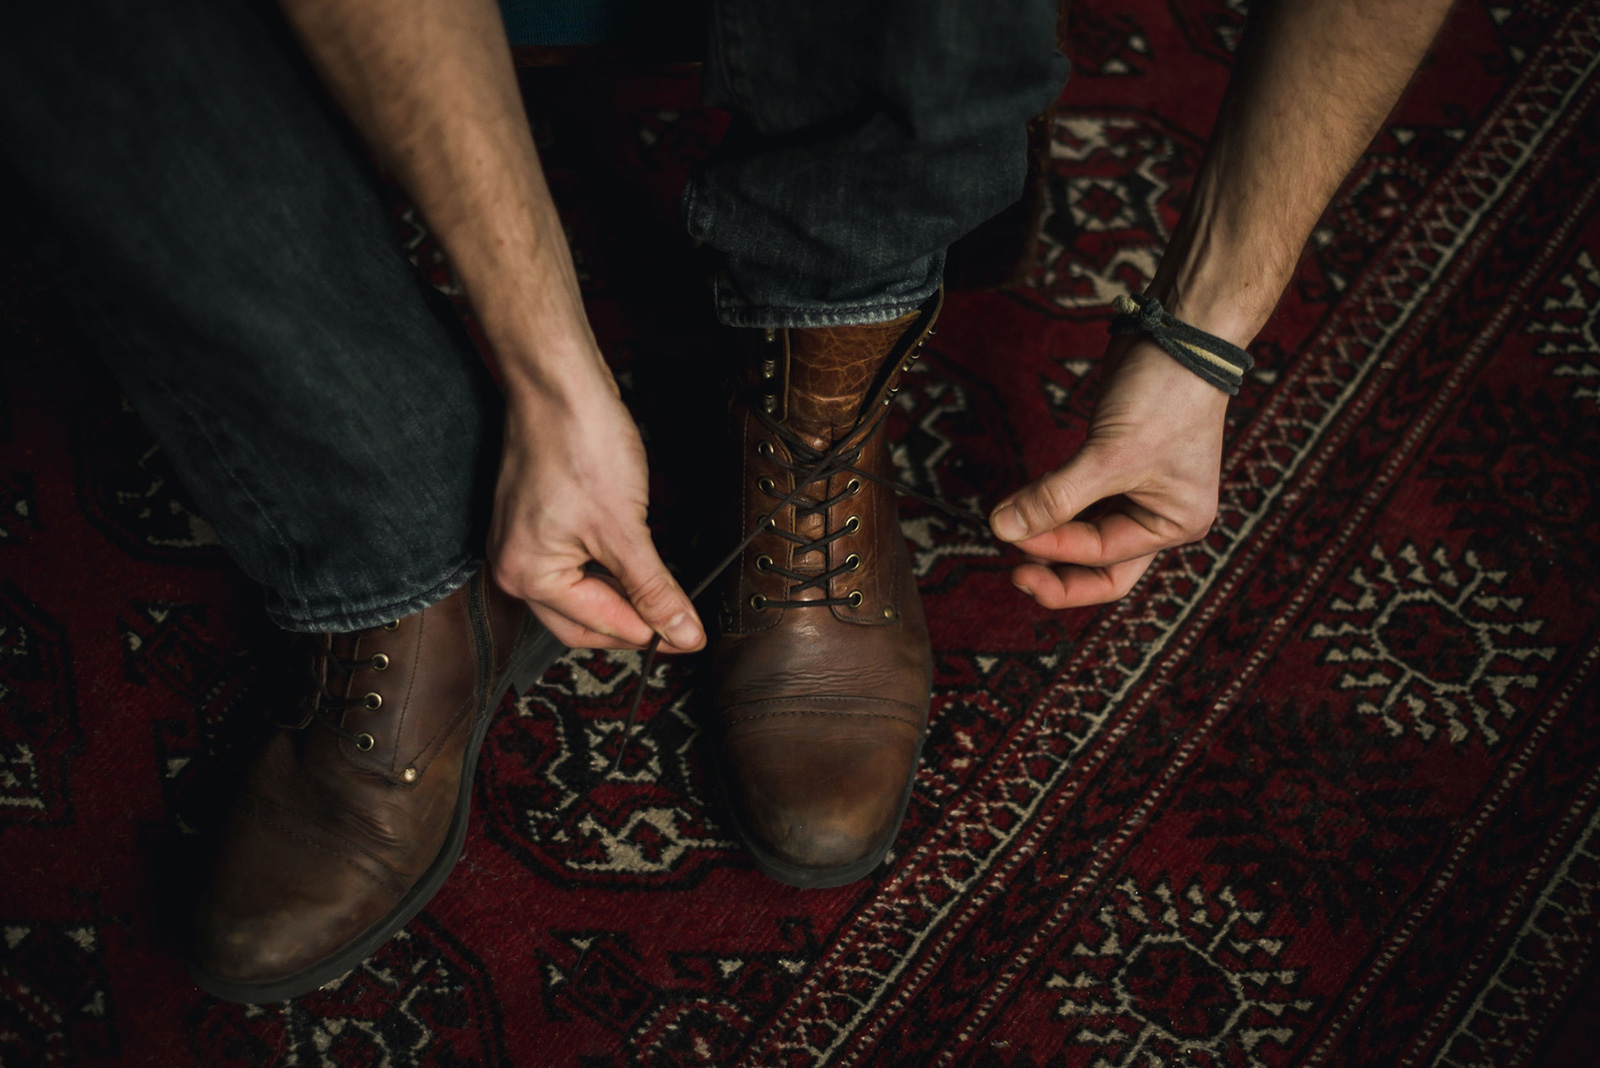 Daily Care Basics - How to Care for your boots on a daily basis